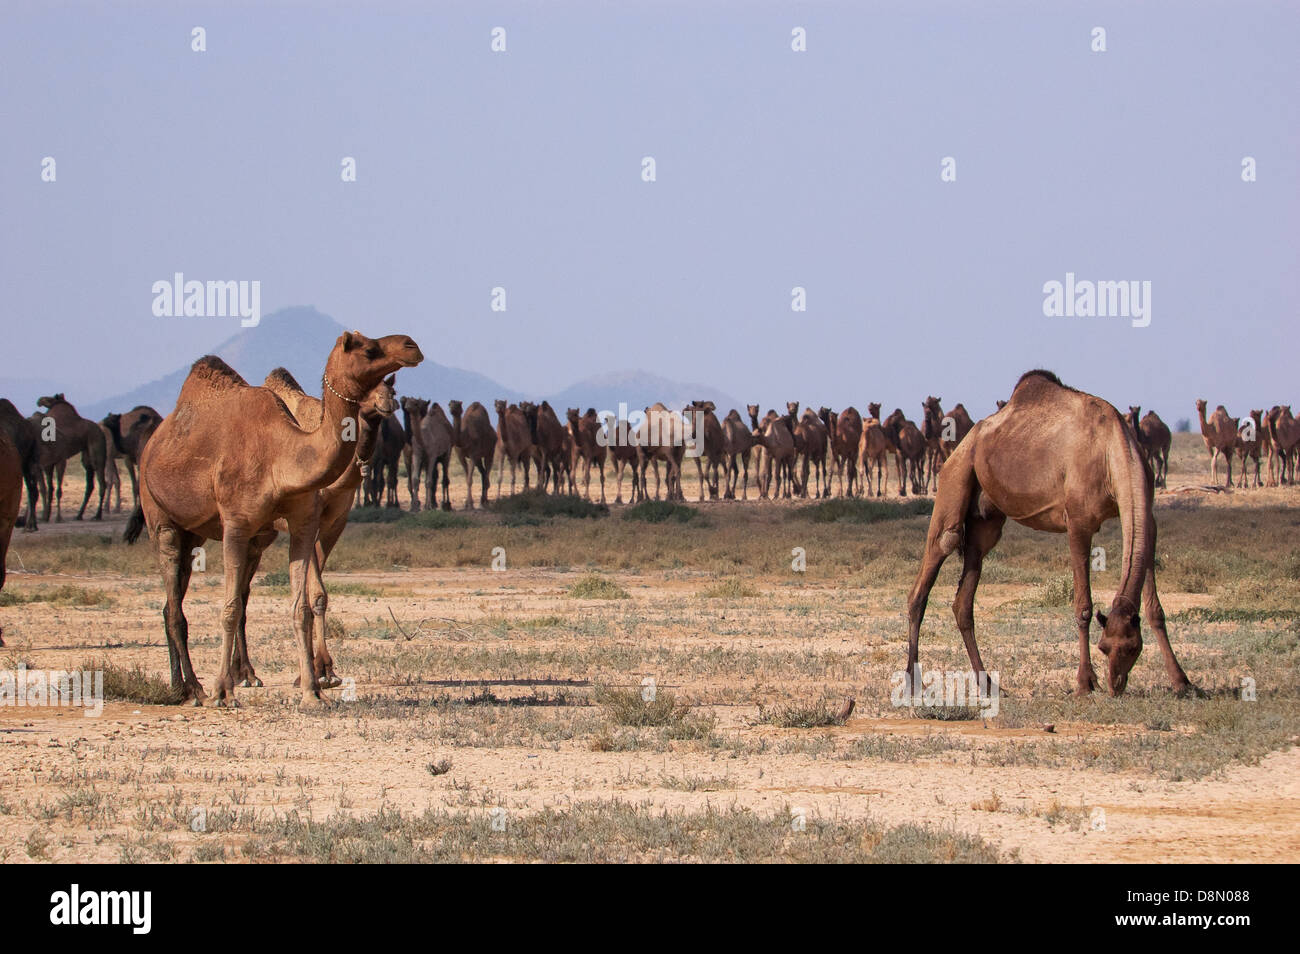 camels at greater rann of kutch - Stock Image